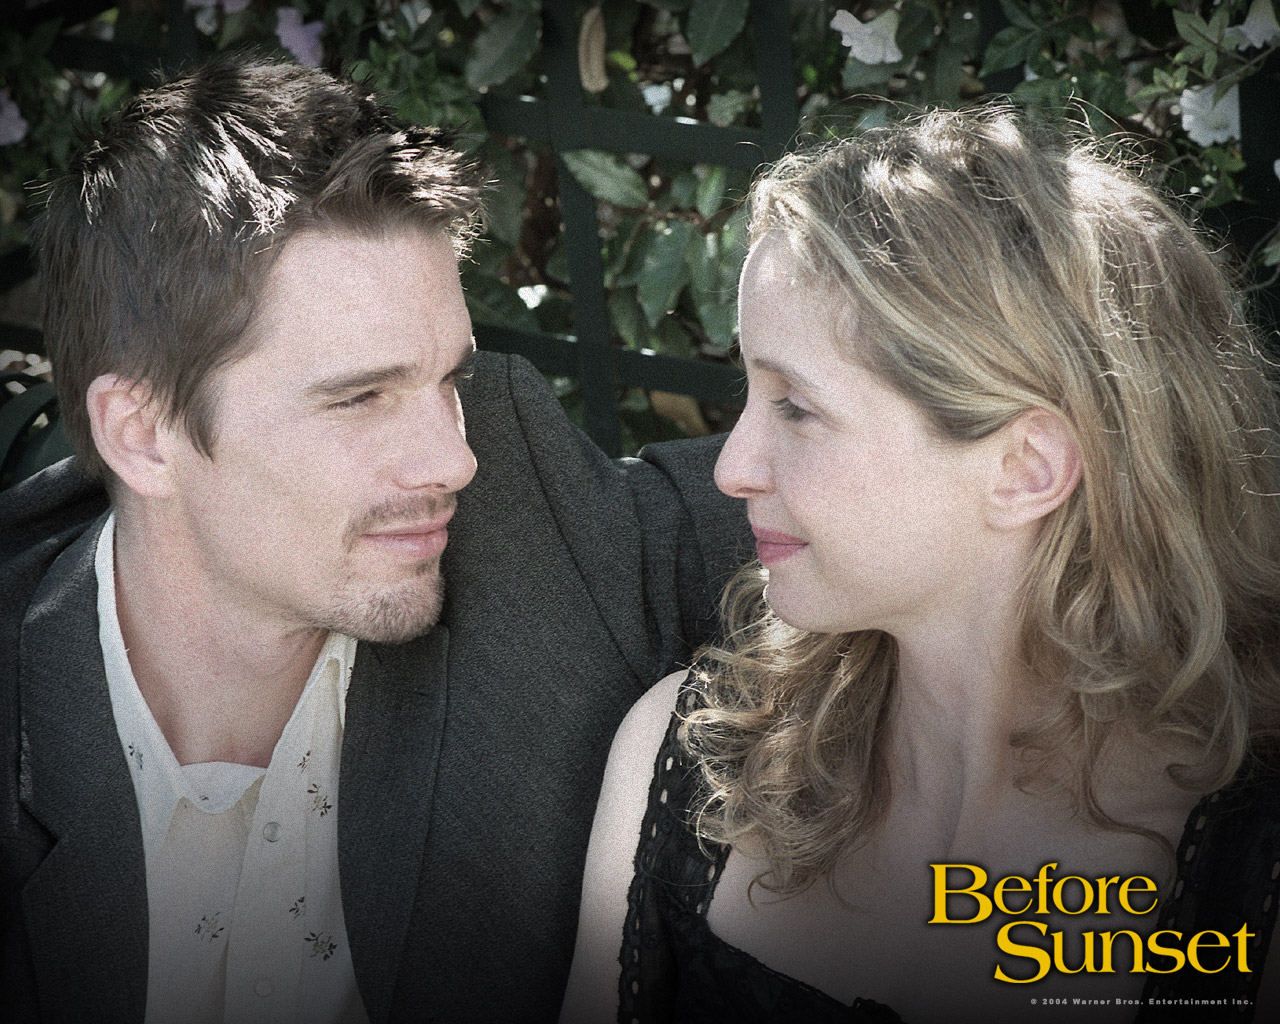 Before sunset 8